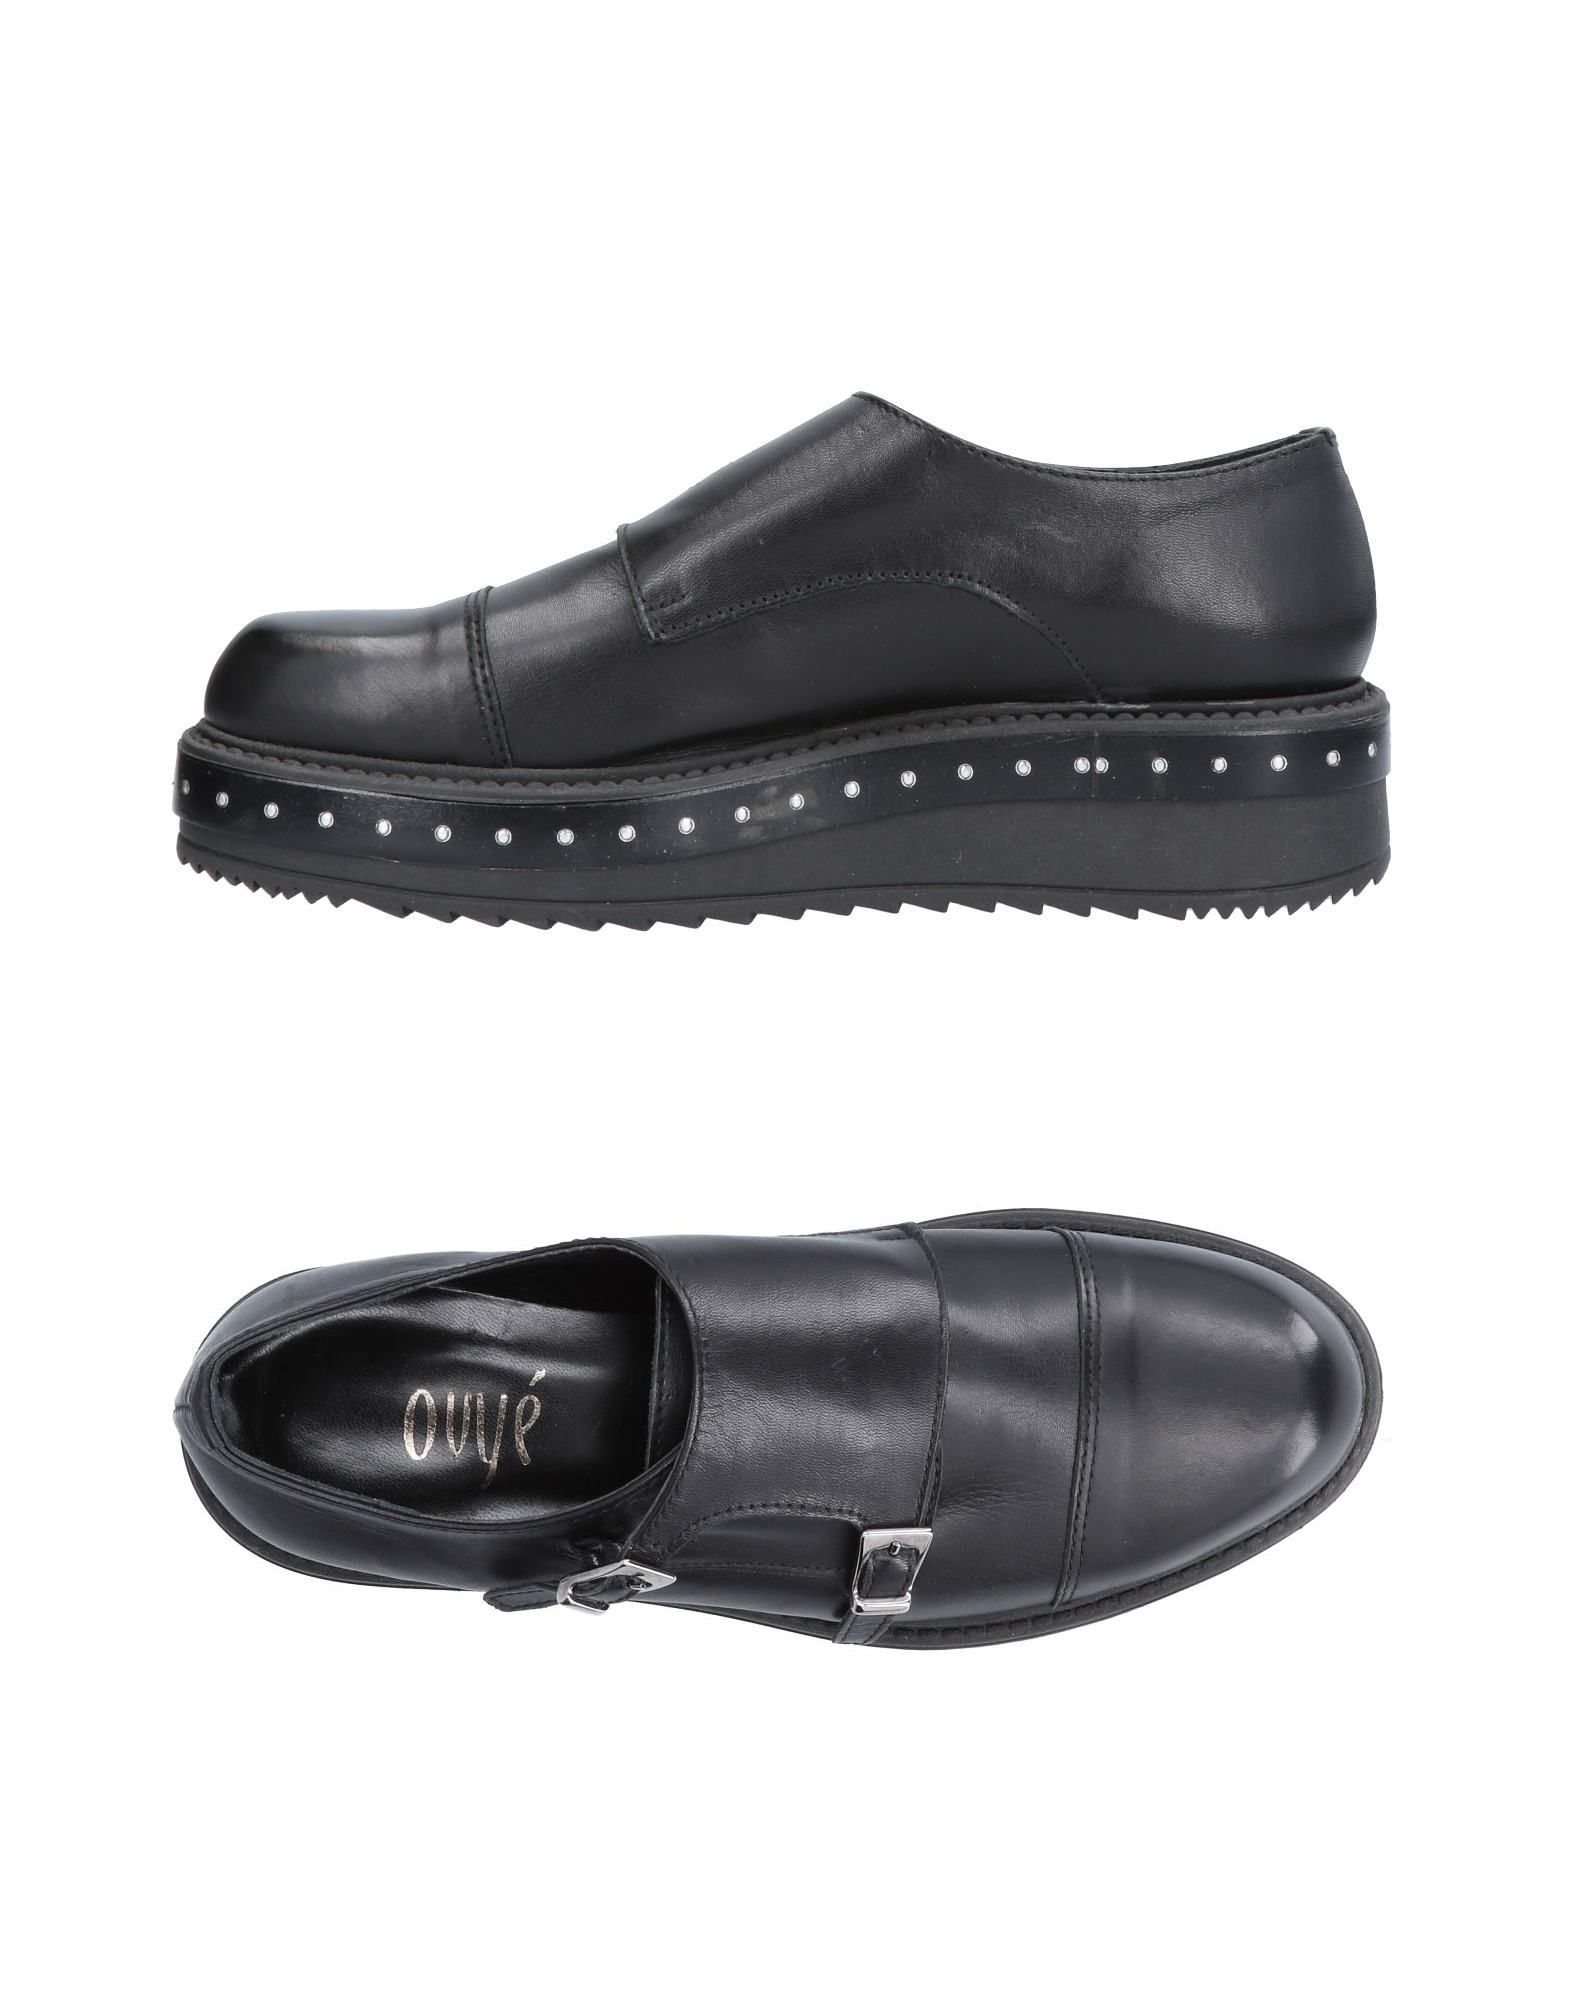 Ovye' By Women Cristina Lucchi Loafers - Women By Ovye' By Cristina Lucchi Loafers online on  Canada - 11456707WS 751ba1